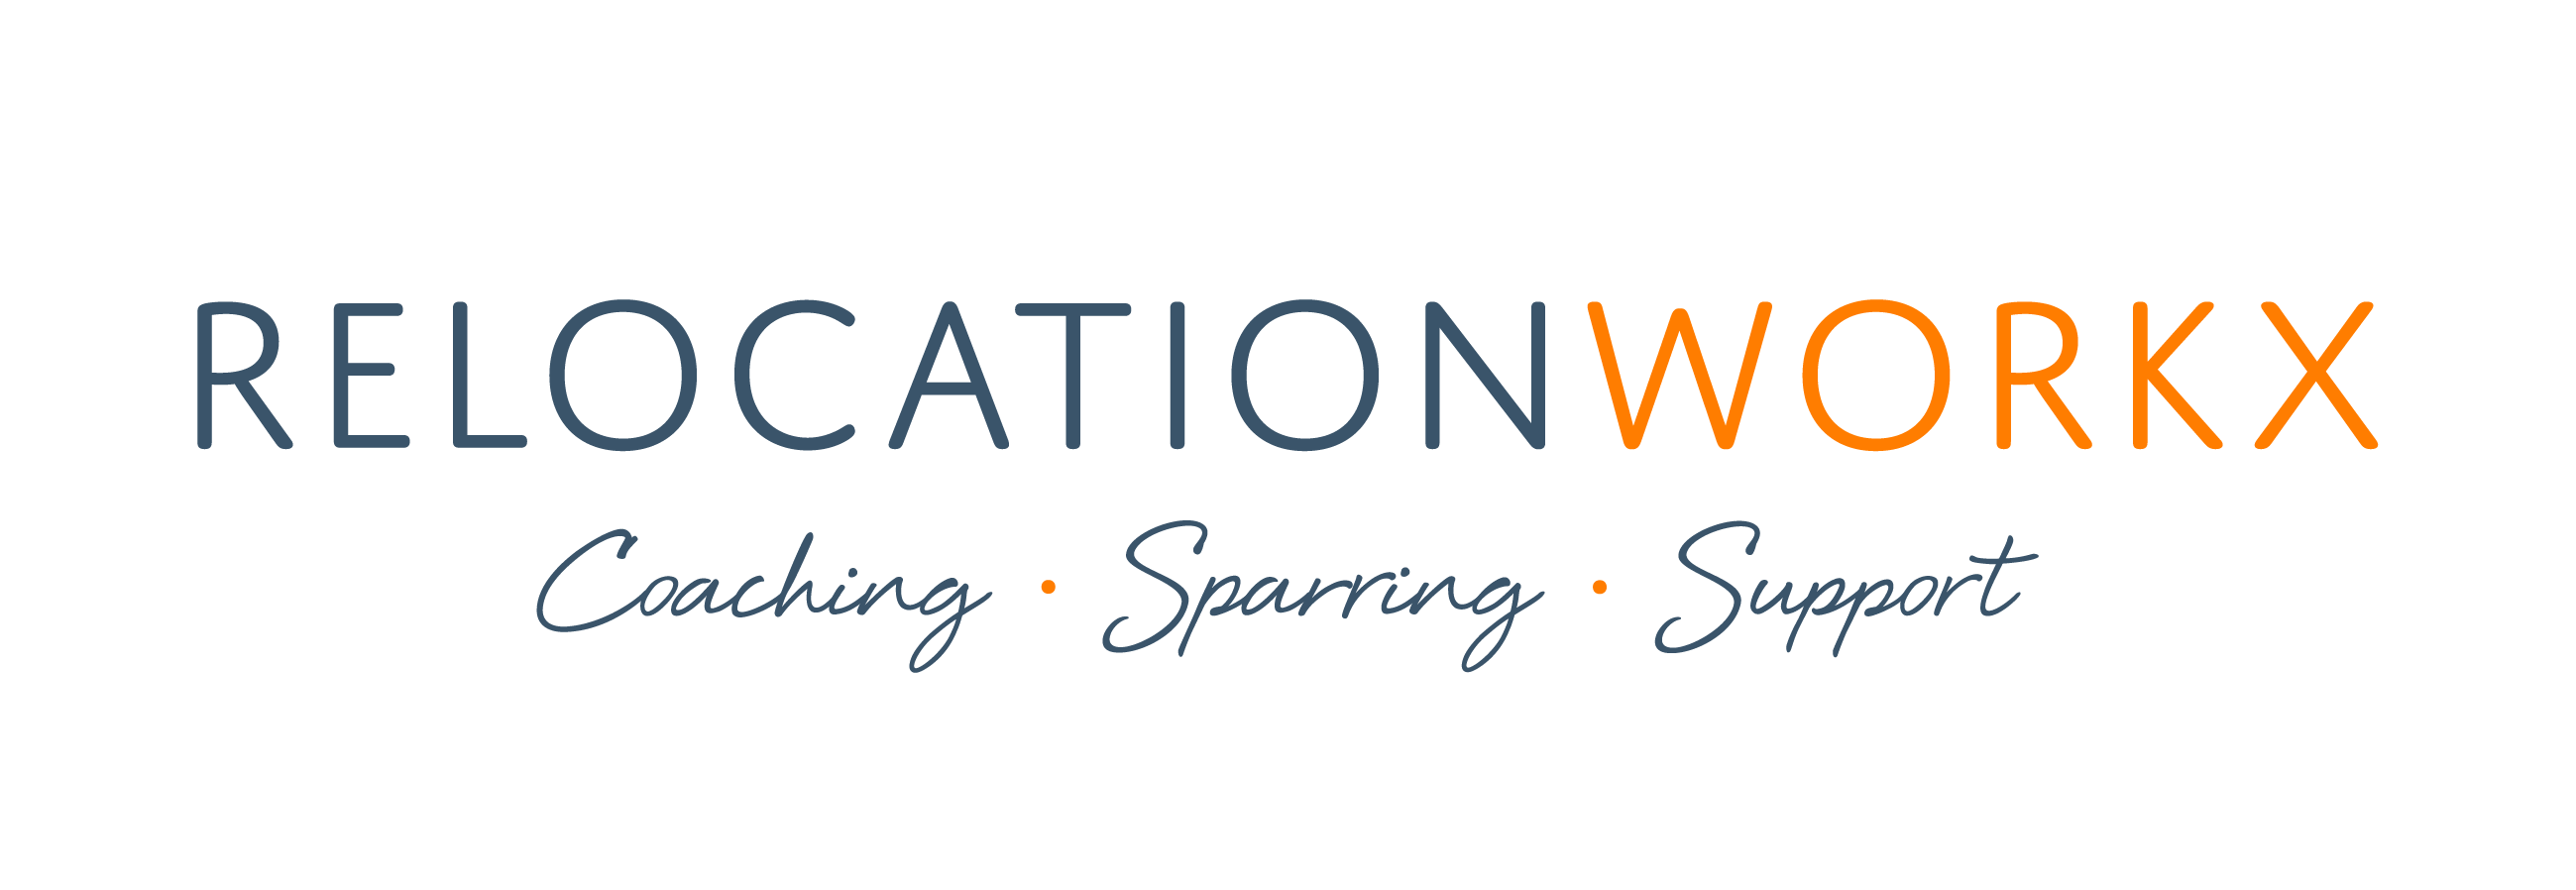 Logo Relocationworkx - Coaching, Sparring, Support.